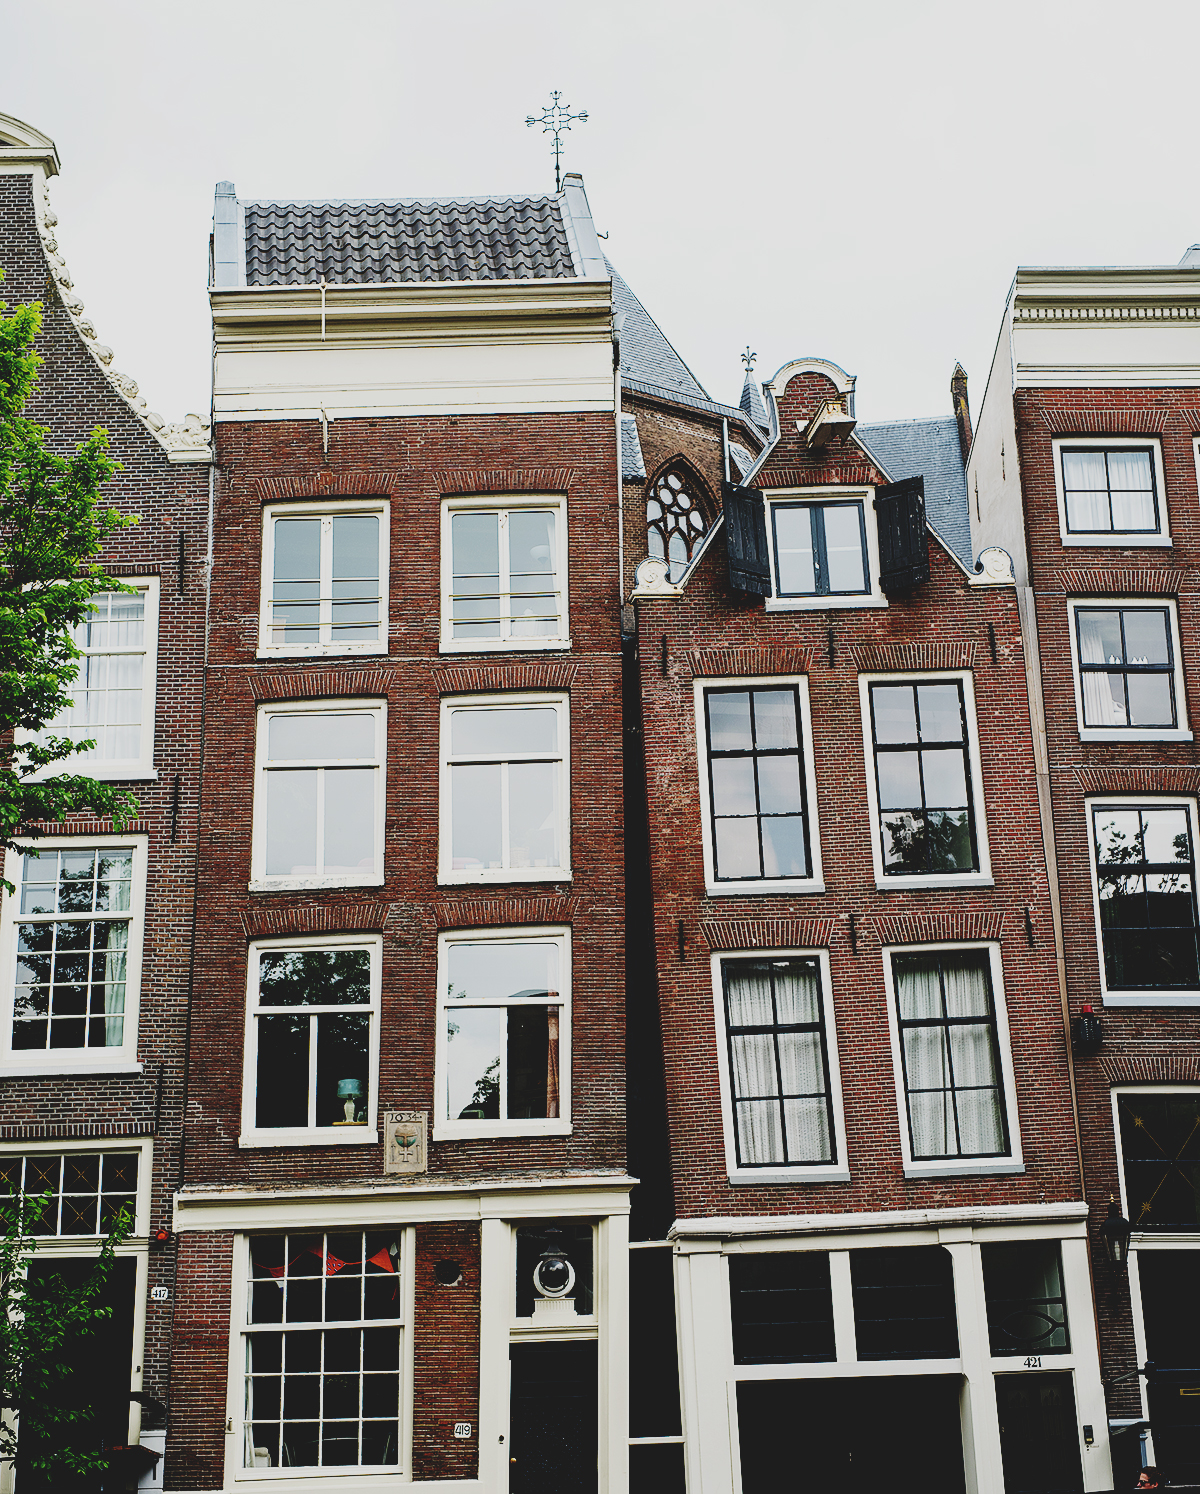 Buildings near the canals in Amsterdam, Netherlands.